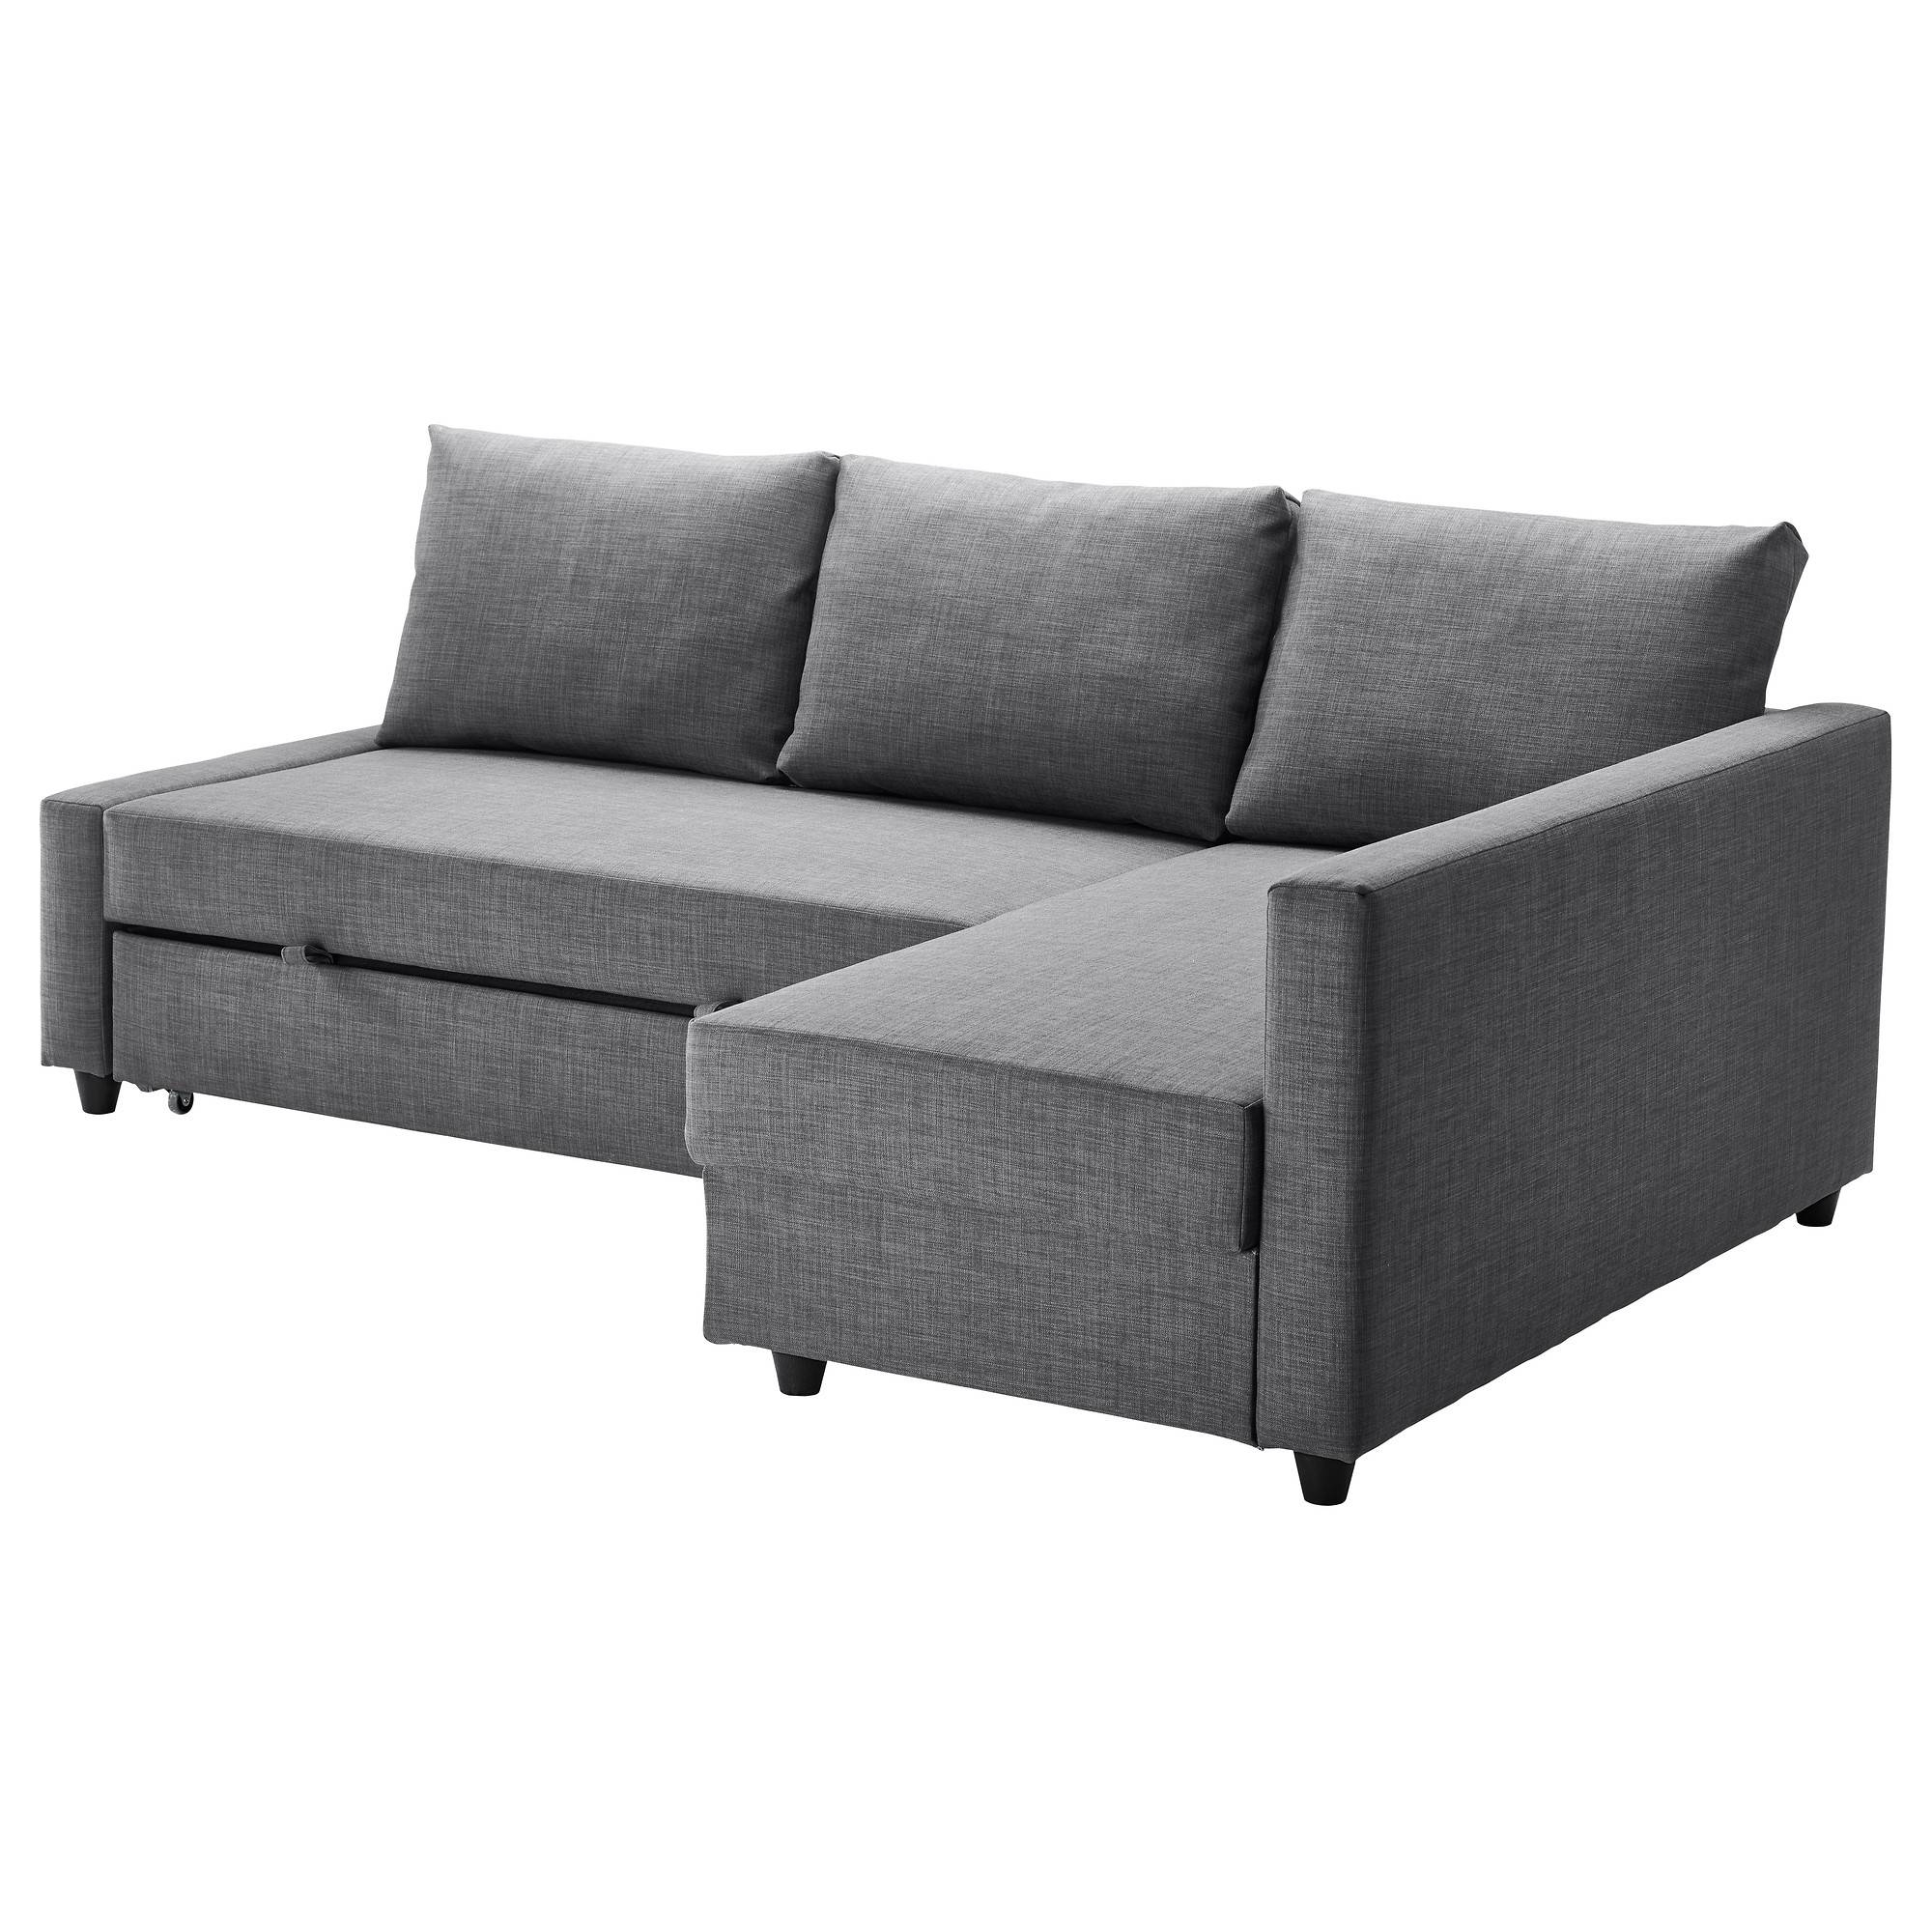 L Shaped Sofa Bed With Storage 20 L Shaped Sofa Bed TheSofa